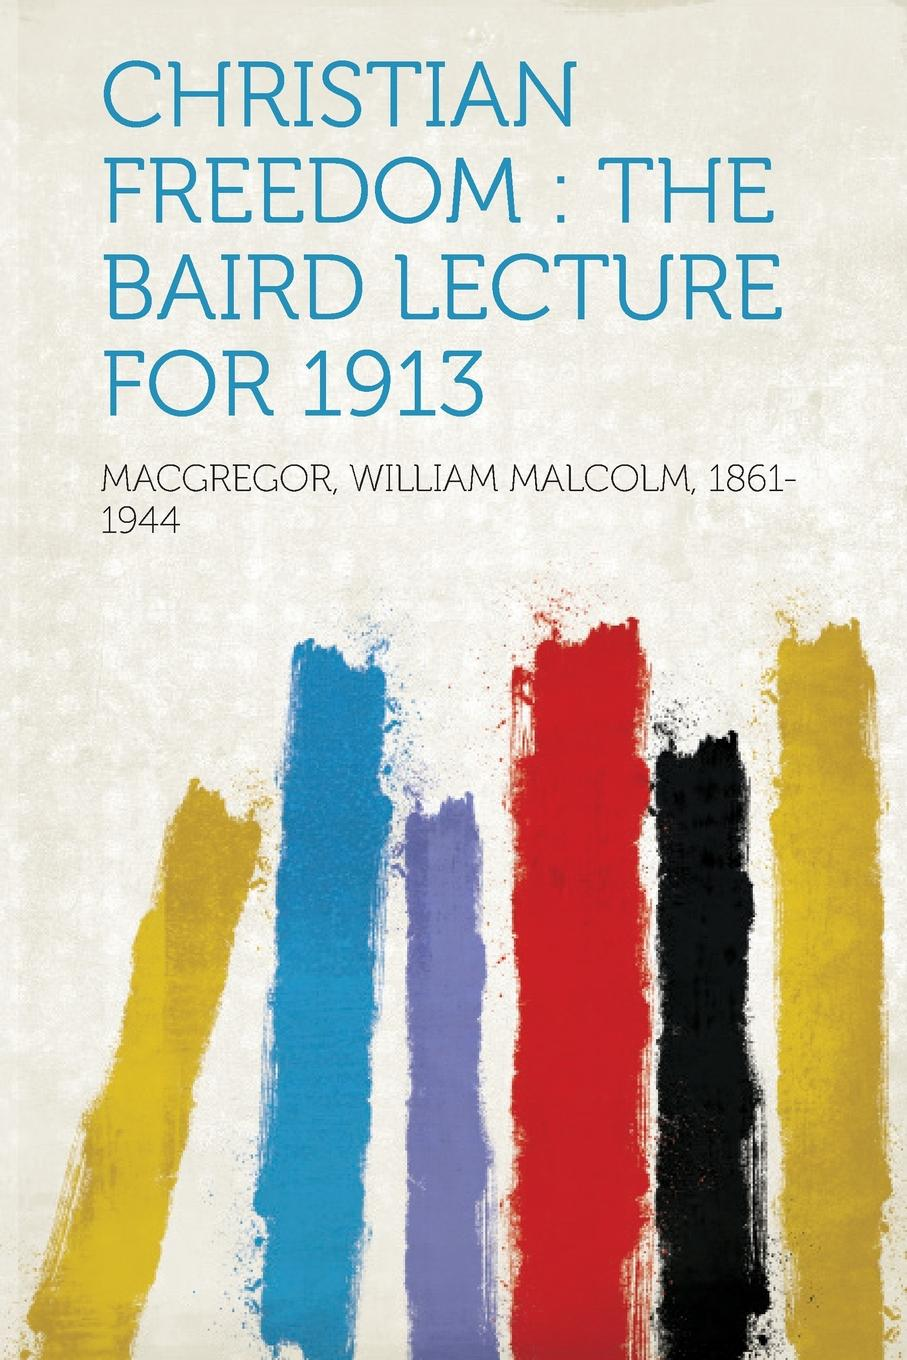 MacGregor William Malcolm 1861-1944 Christian Freedom. The Baird Lecture for 1913